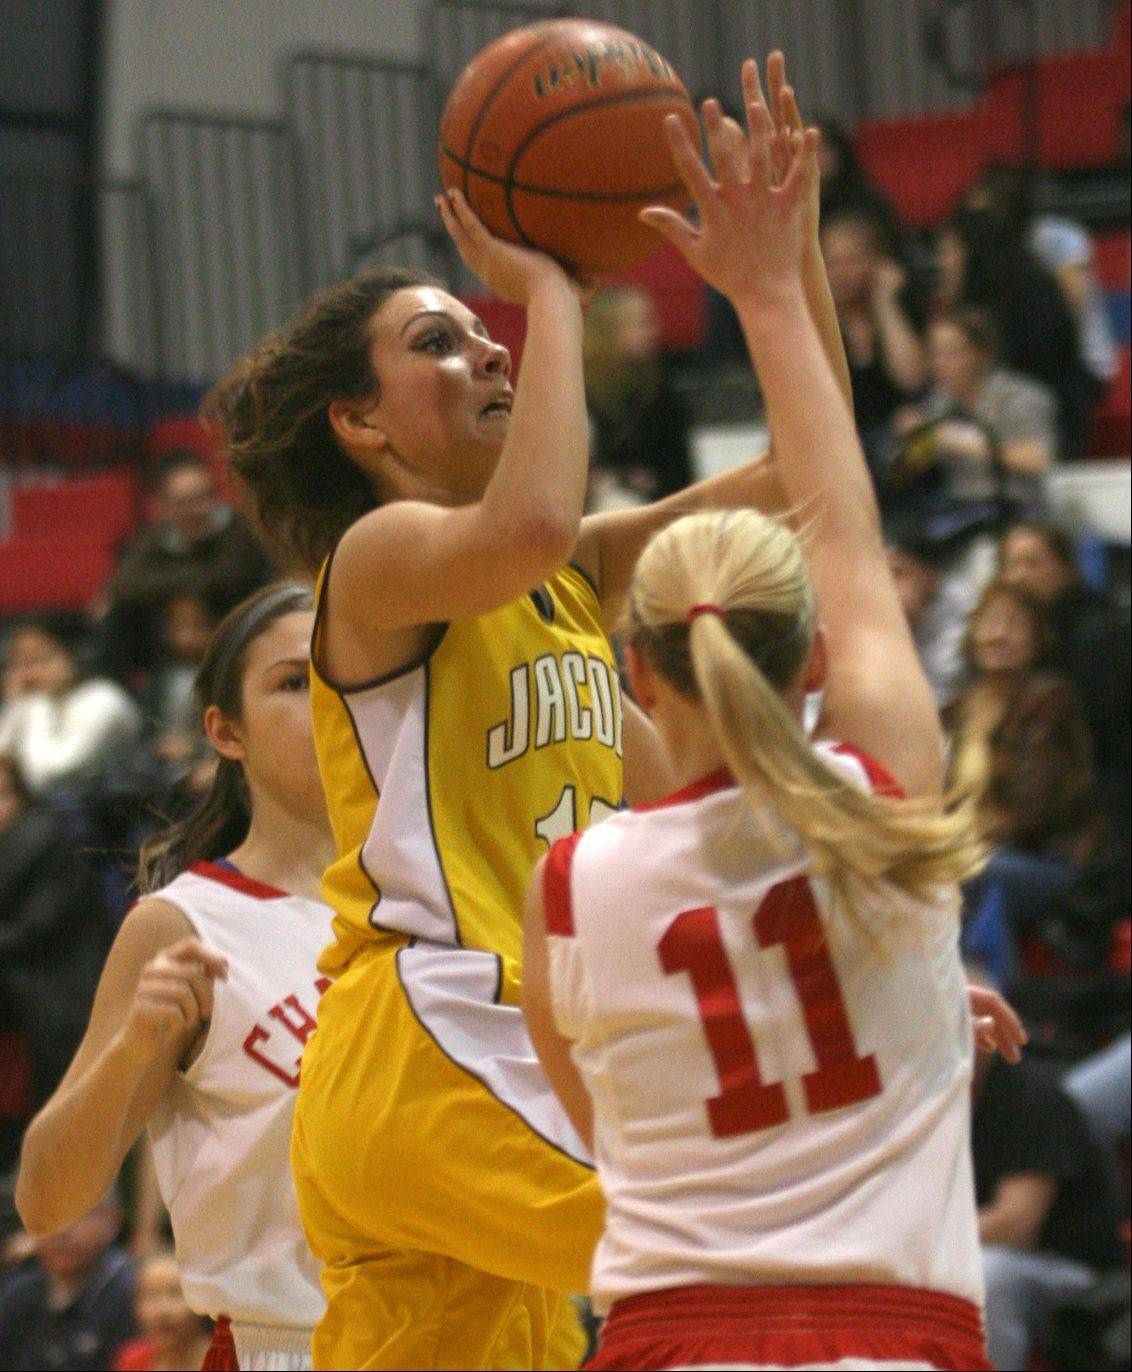 Jacobs' Payton Berg drives to the hoop against Dundee-Crown in Carpentersville on Friday night.